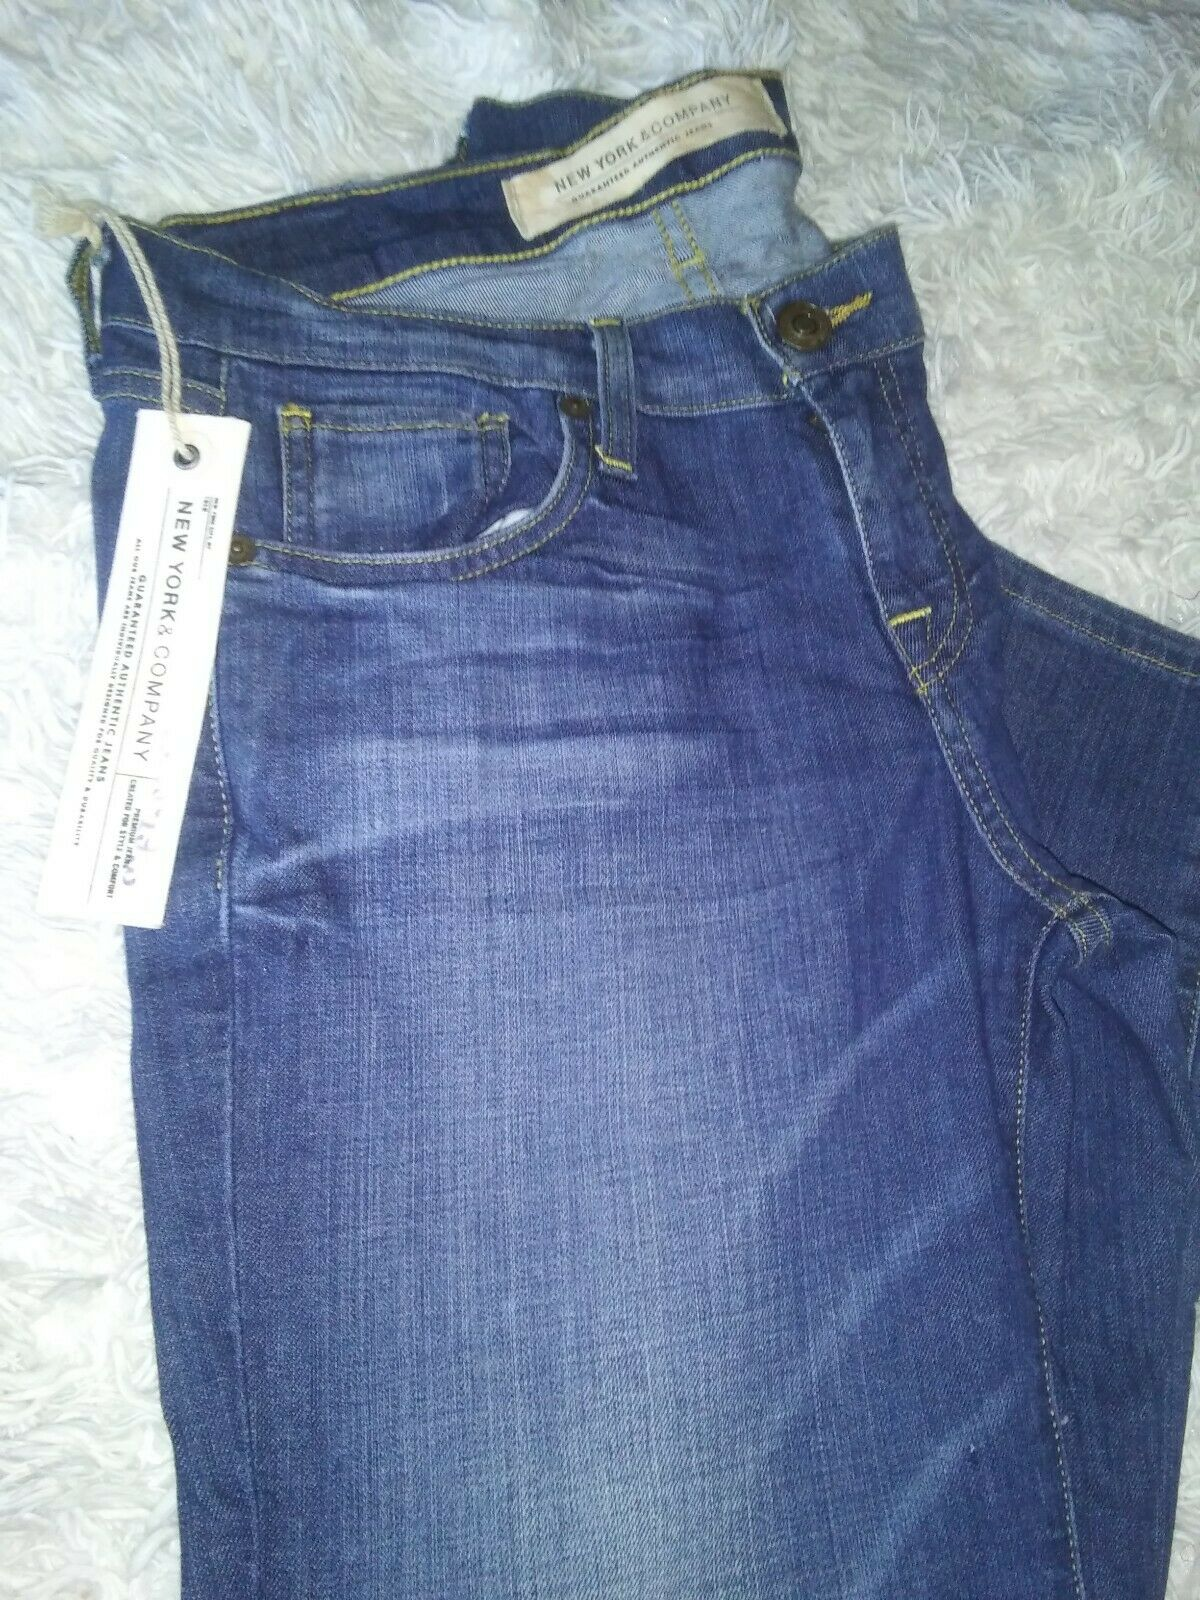 New York & Company jeansthis is your premium pencil jeans size 10 30